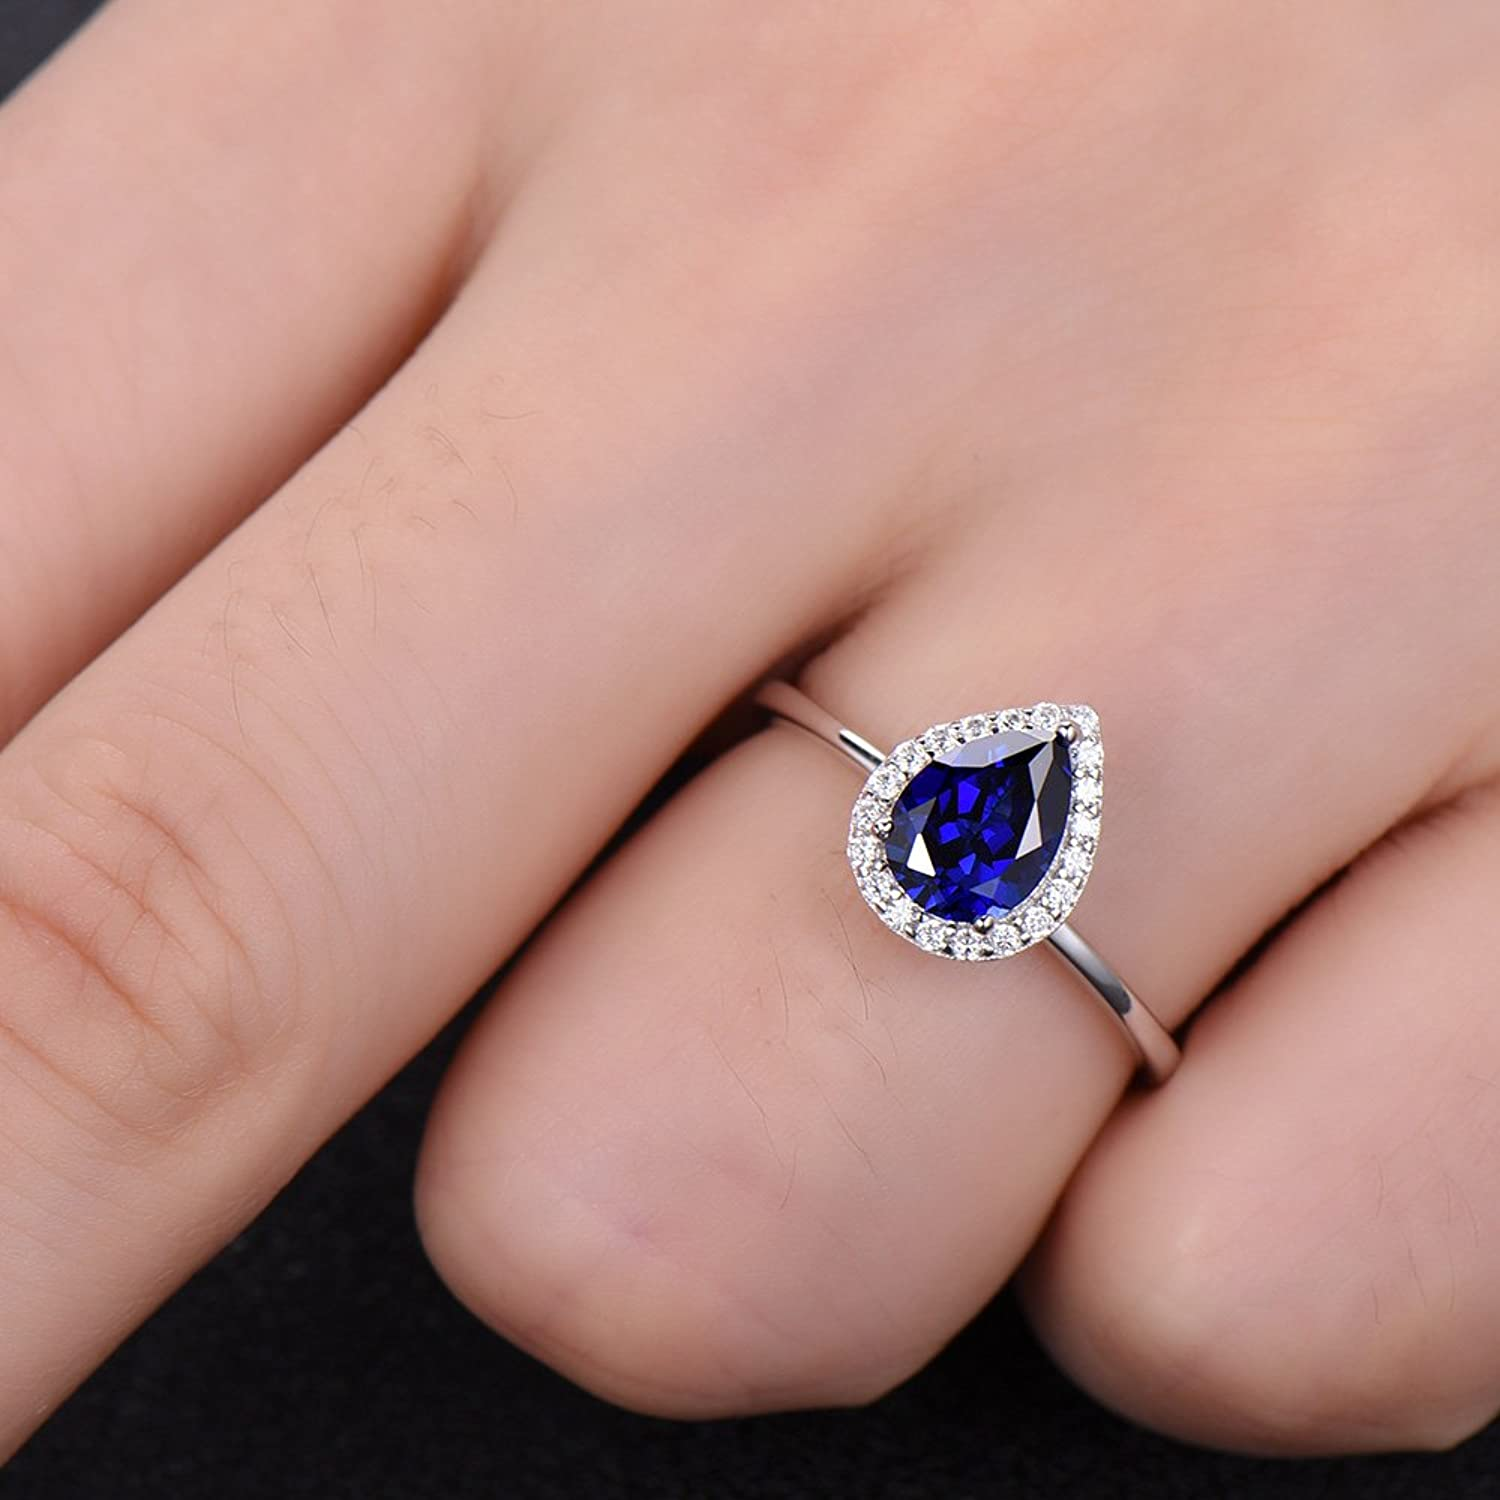 Amazon.com: Pear Shaped Lab Blue Sapphire Engagement Ring White Gold ...